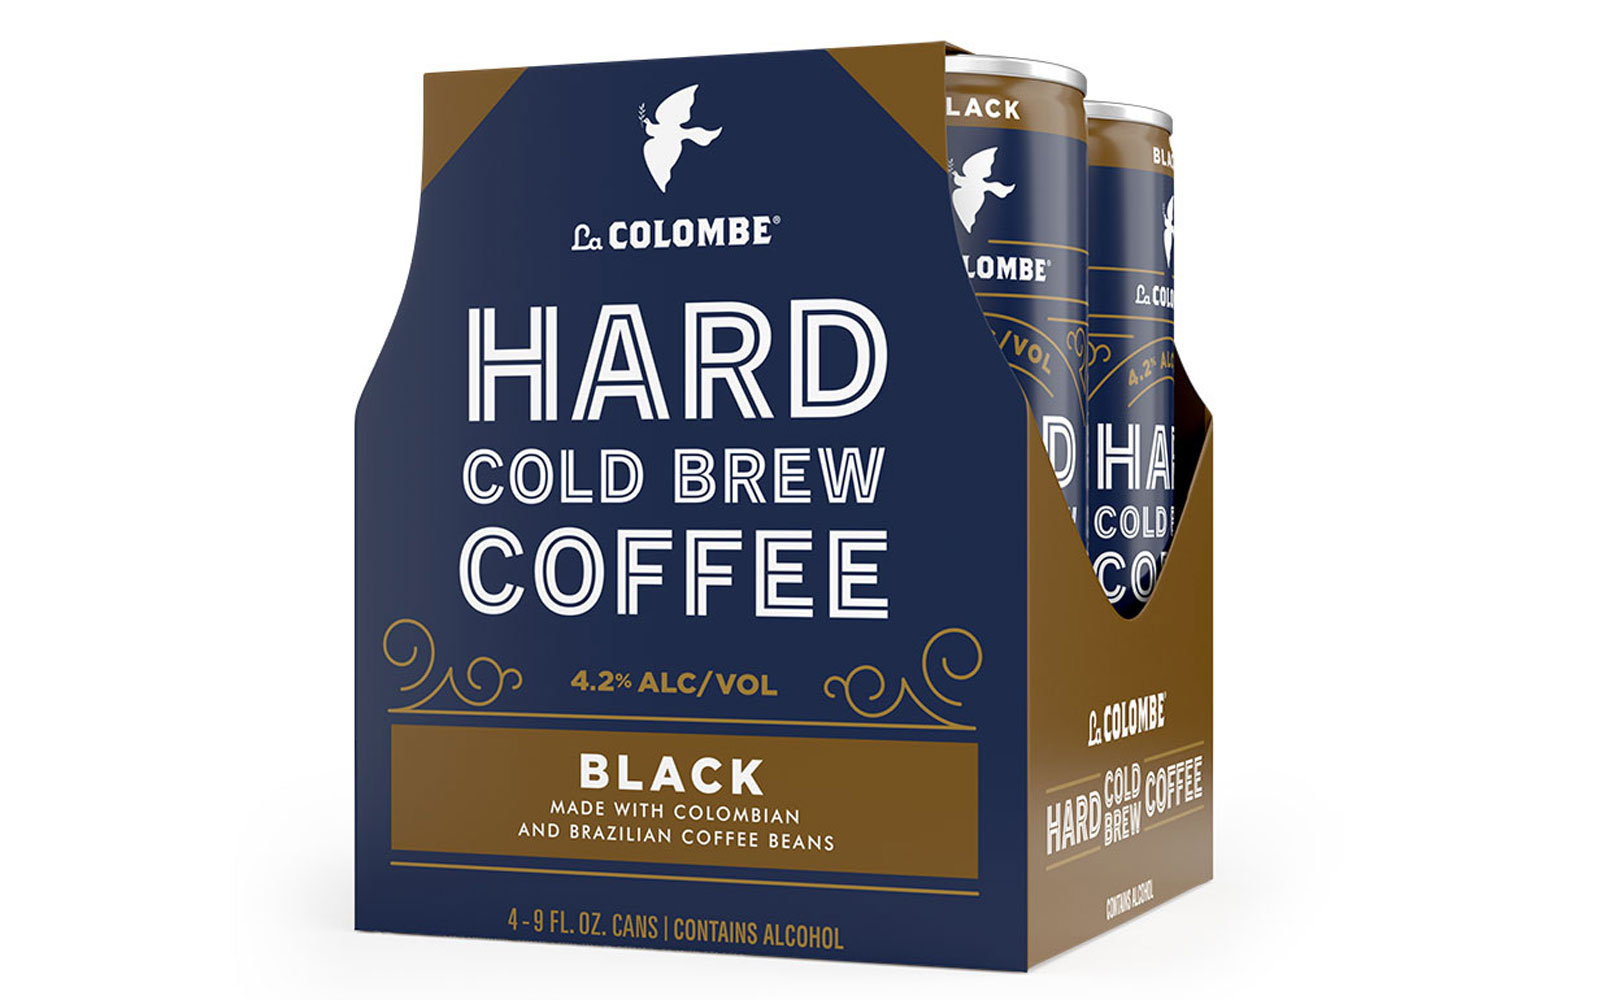 La Colombe's hard cold brew coffee